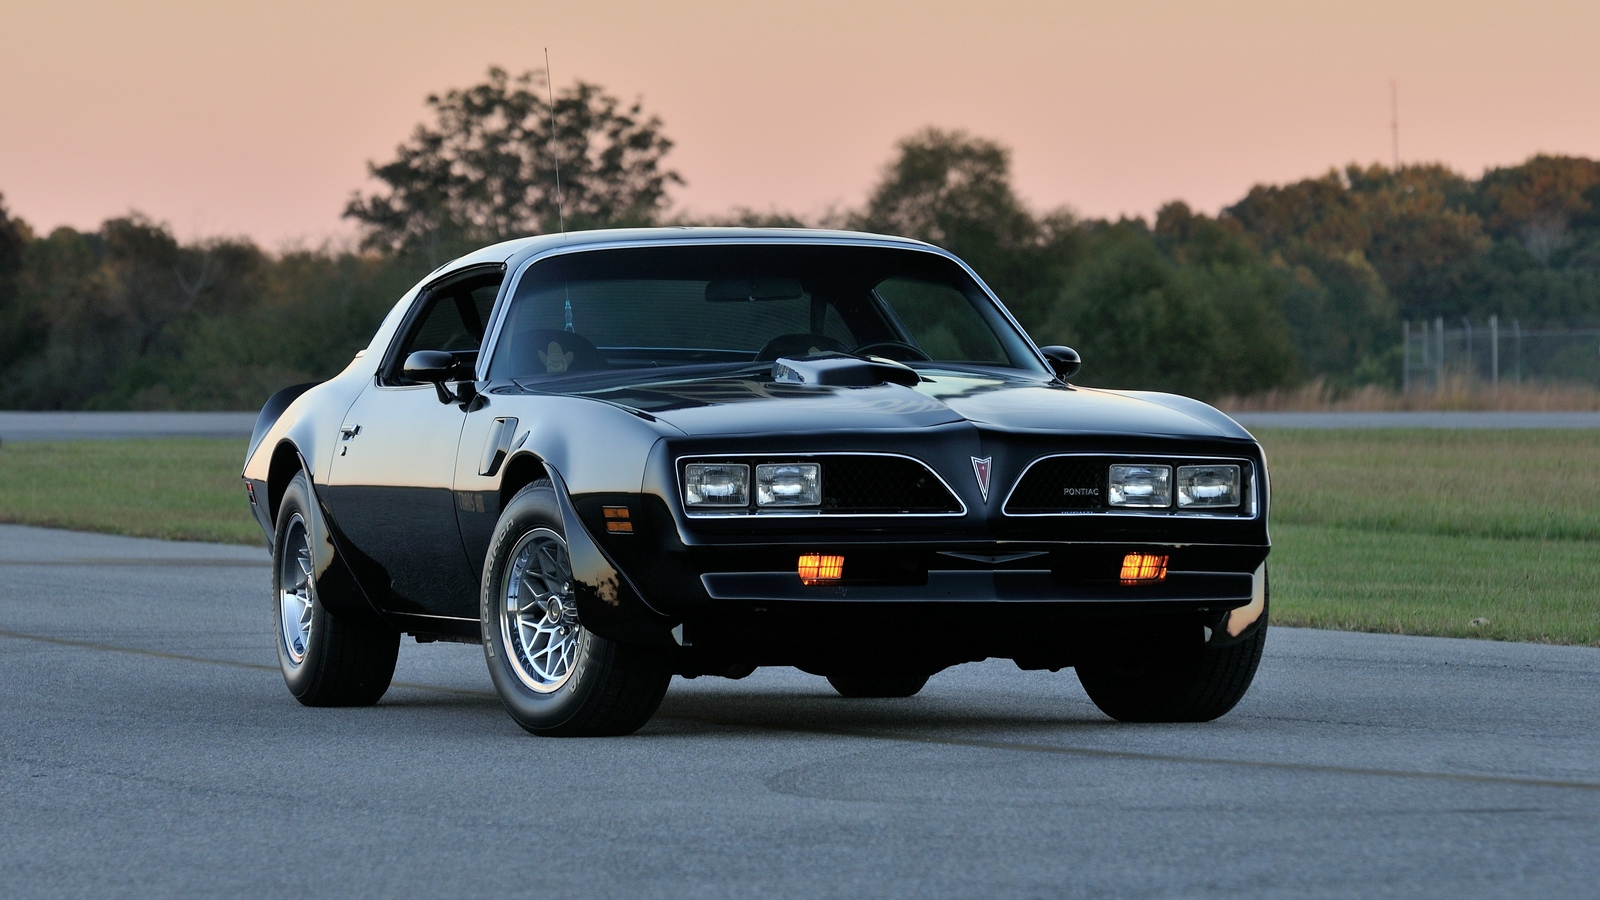 Download wallpaper 1600x900 pontiac firebird trans am ws6 1600x900